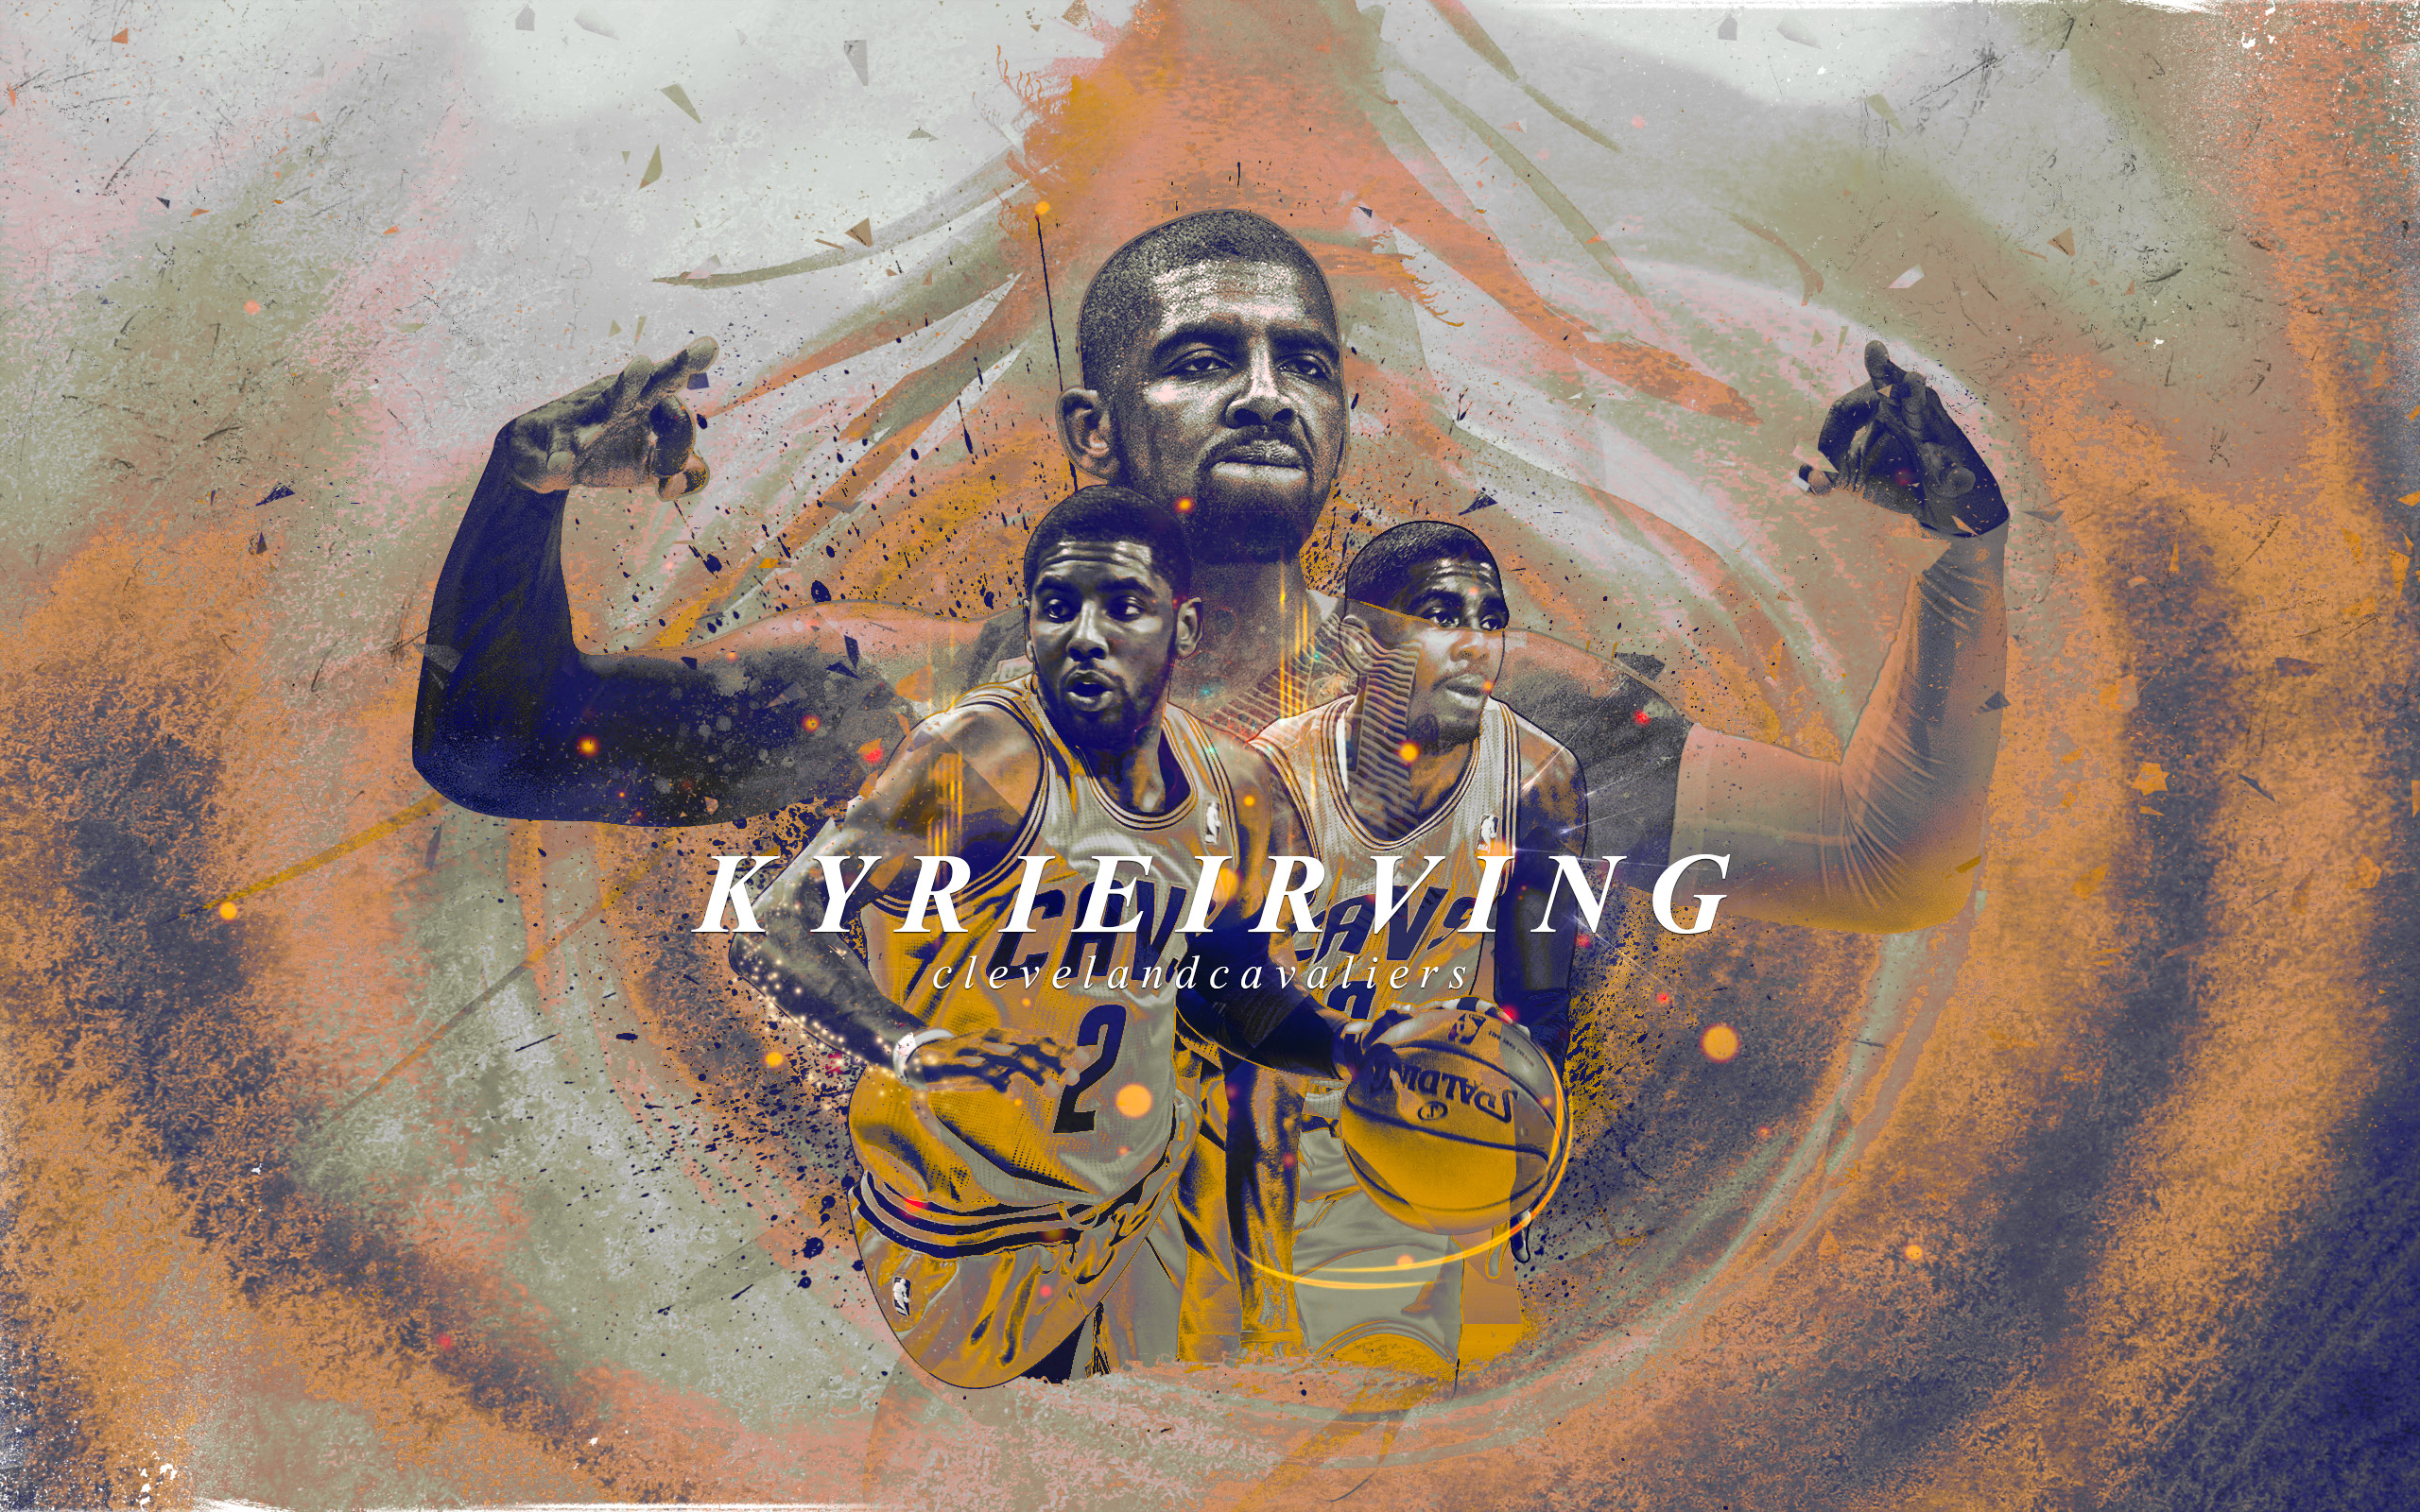 2016 Year Of Kyrie Irving Wallpaper Basketball Wallpapers at 2560x1600